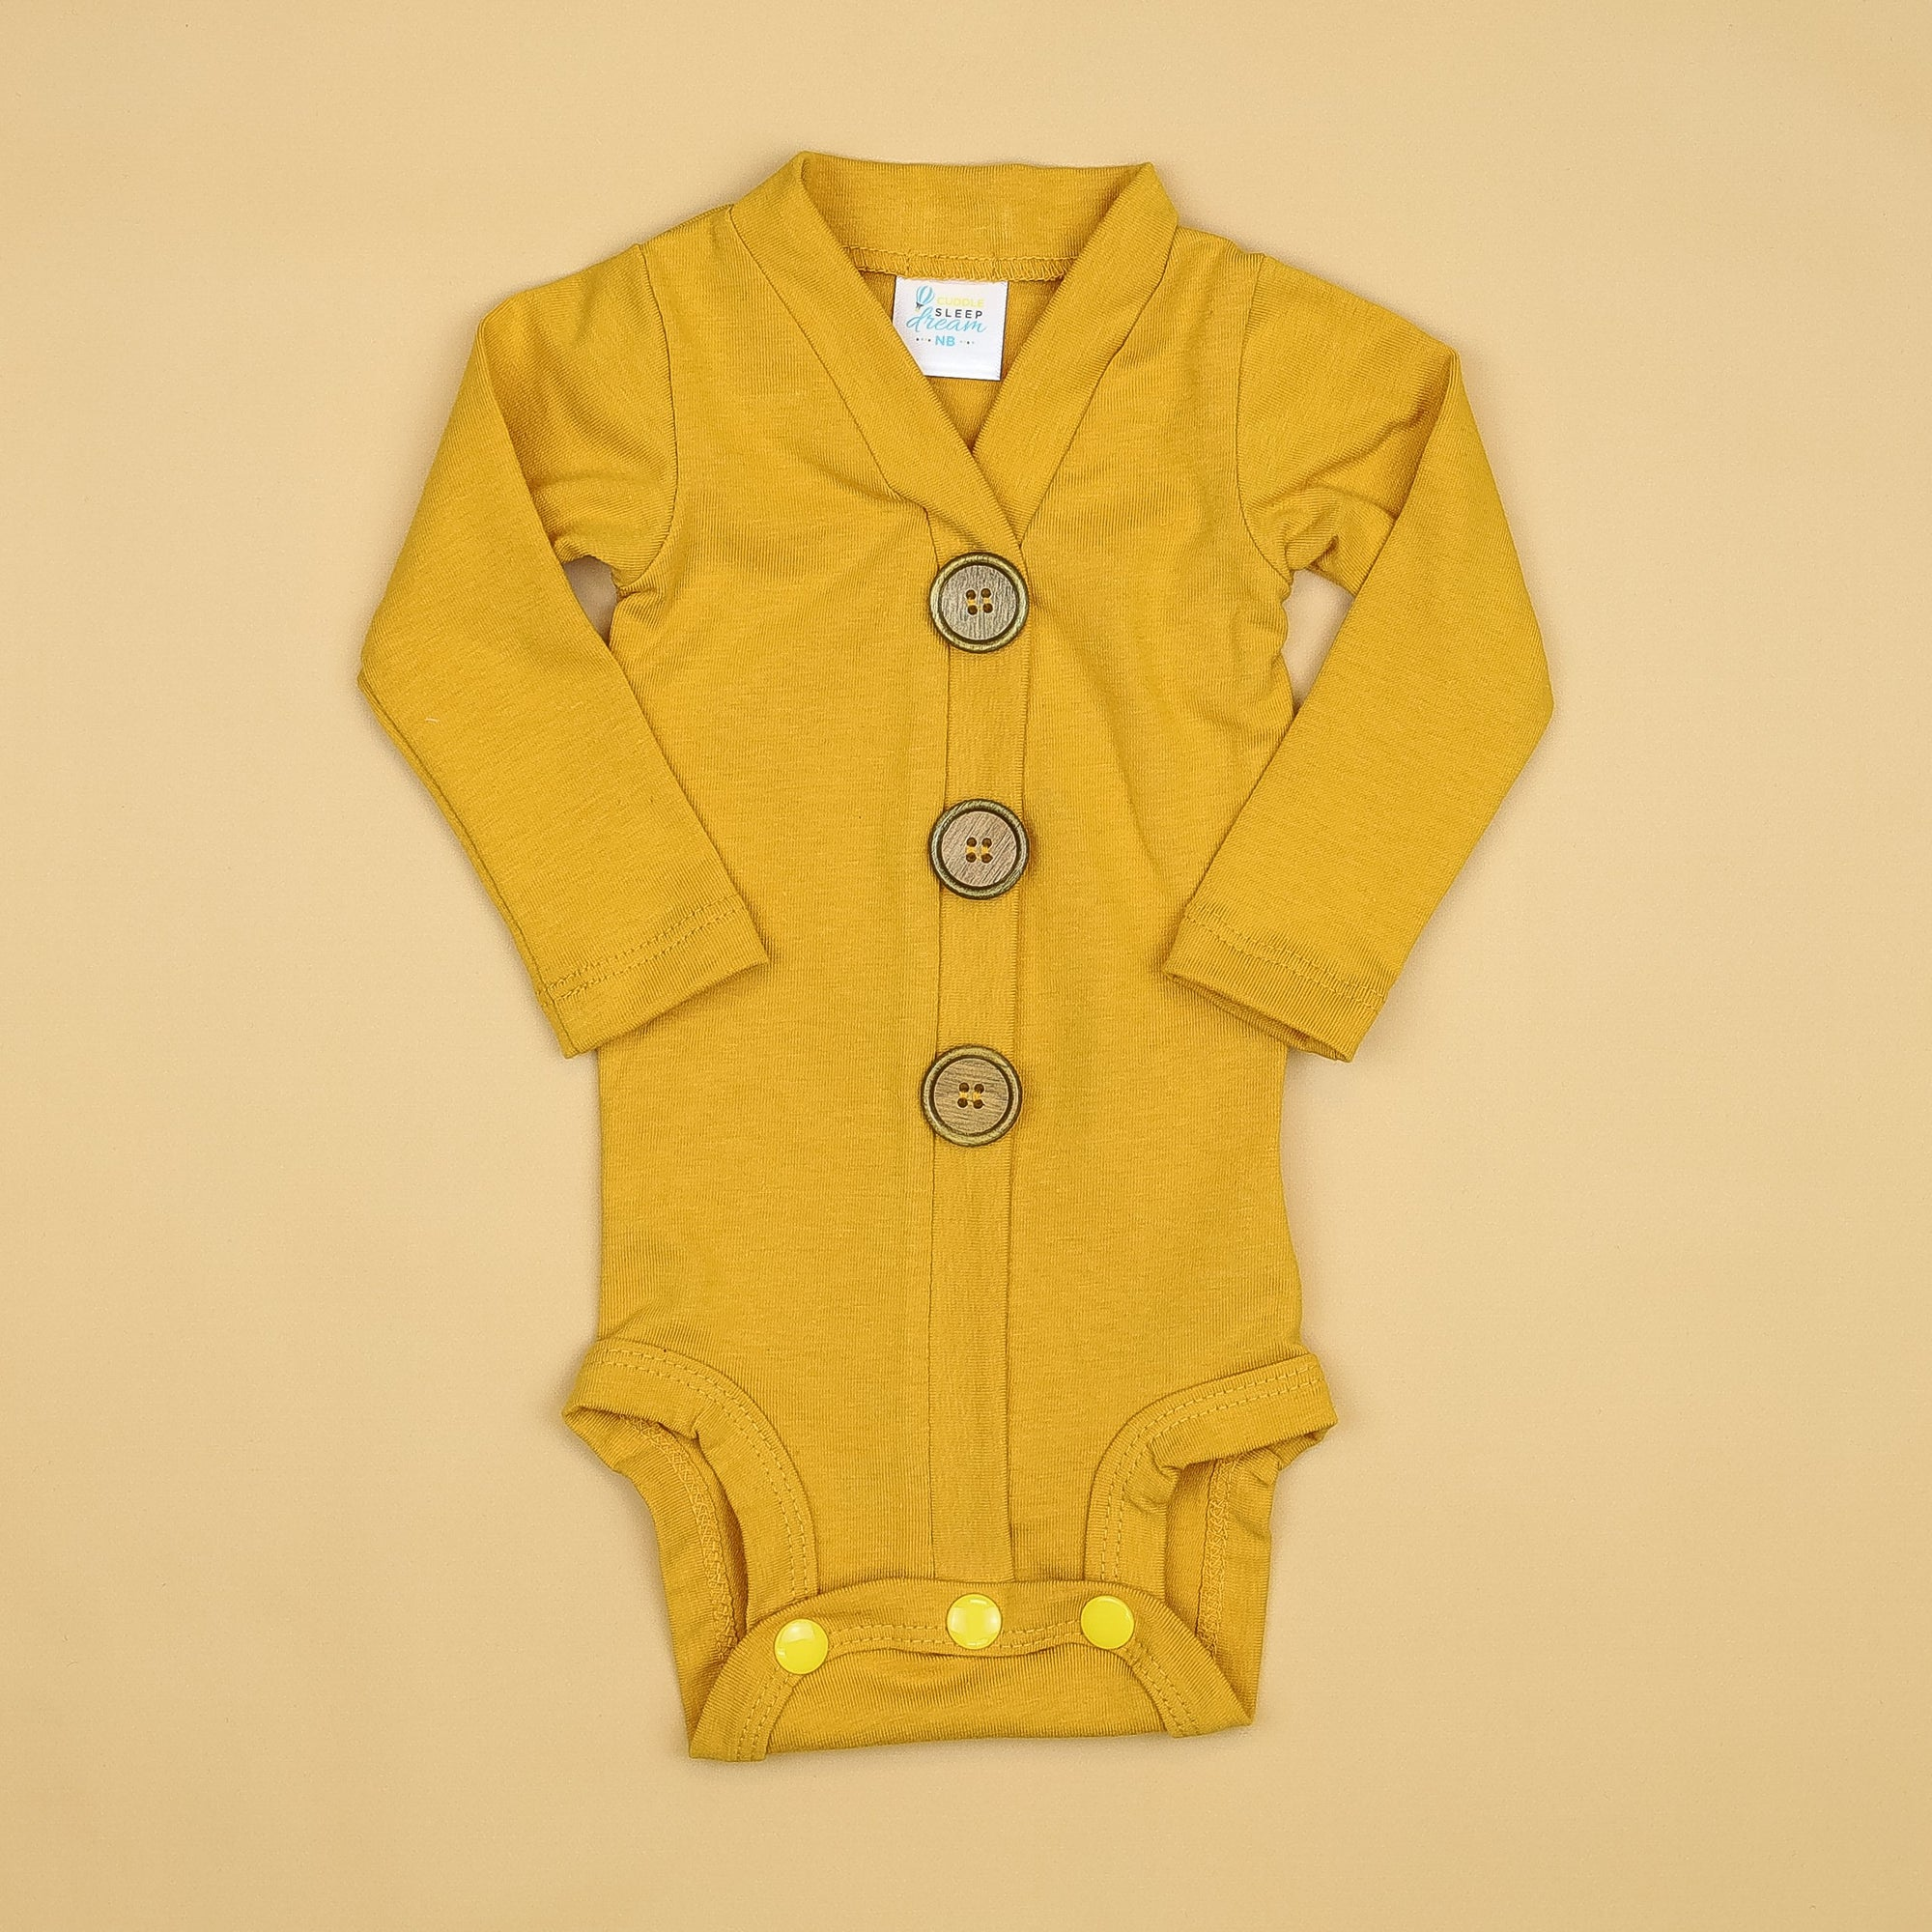 Cuddle Sleep Dream Cardigan Mustard Cardisuit (Aug 2020)